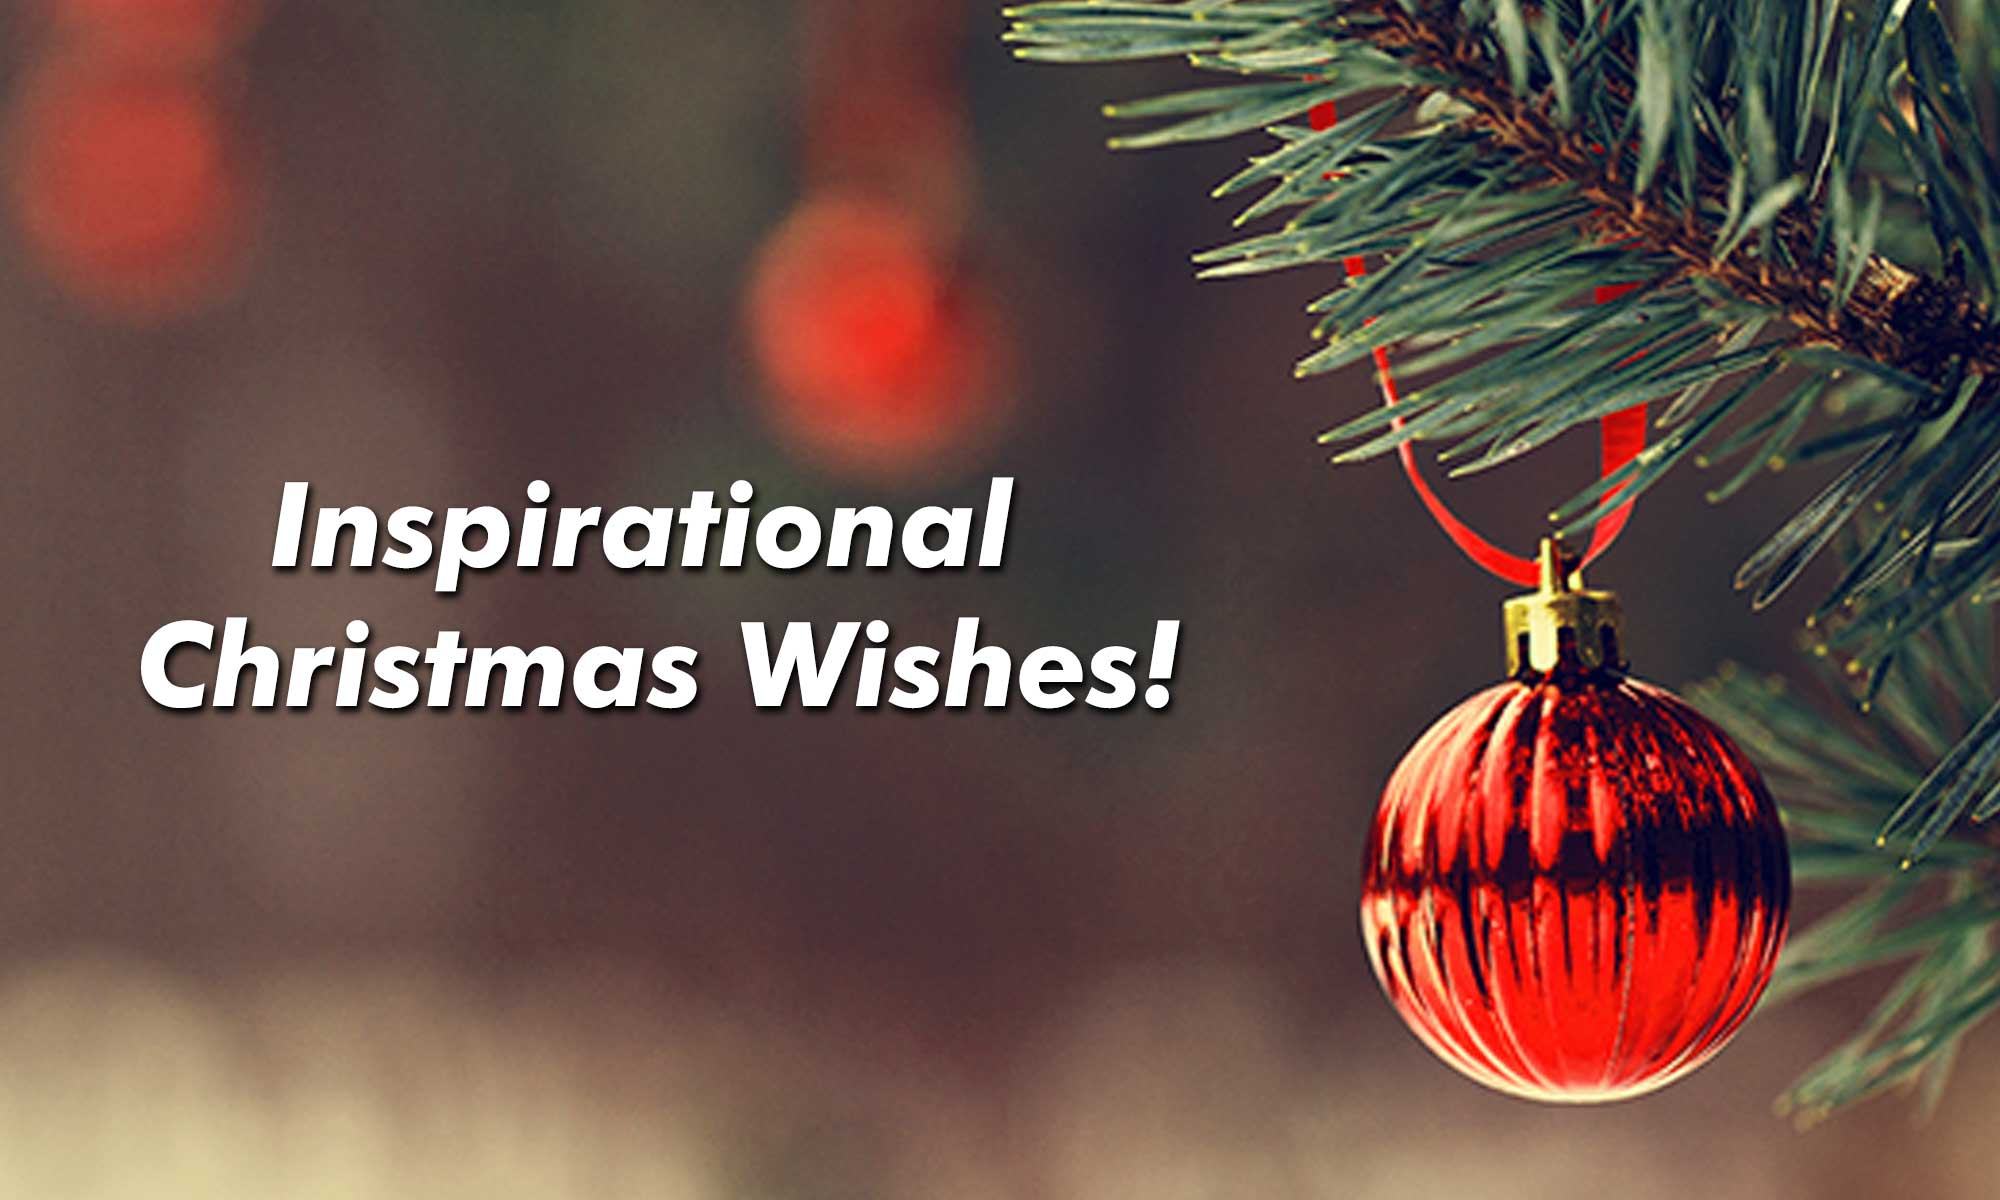 inspirational-christmas-wishes